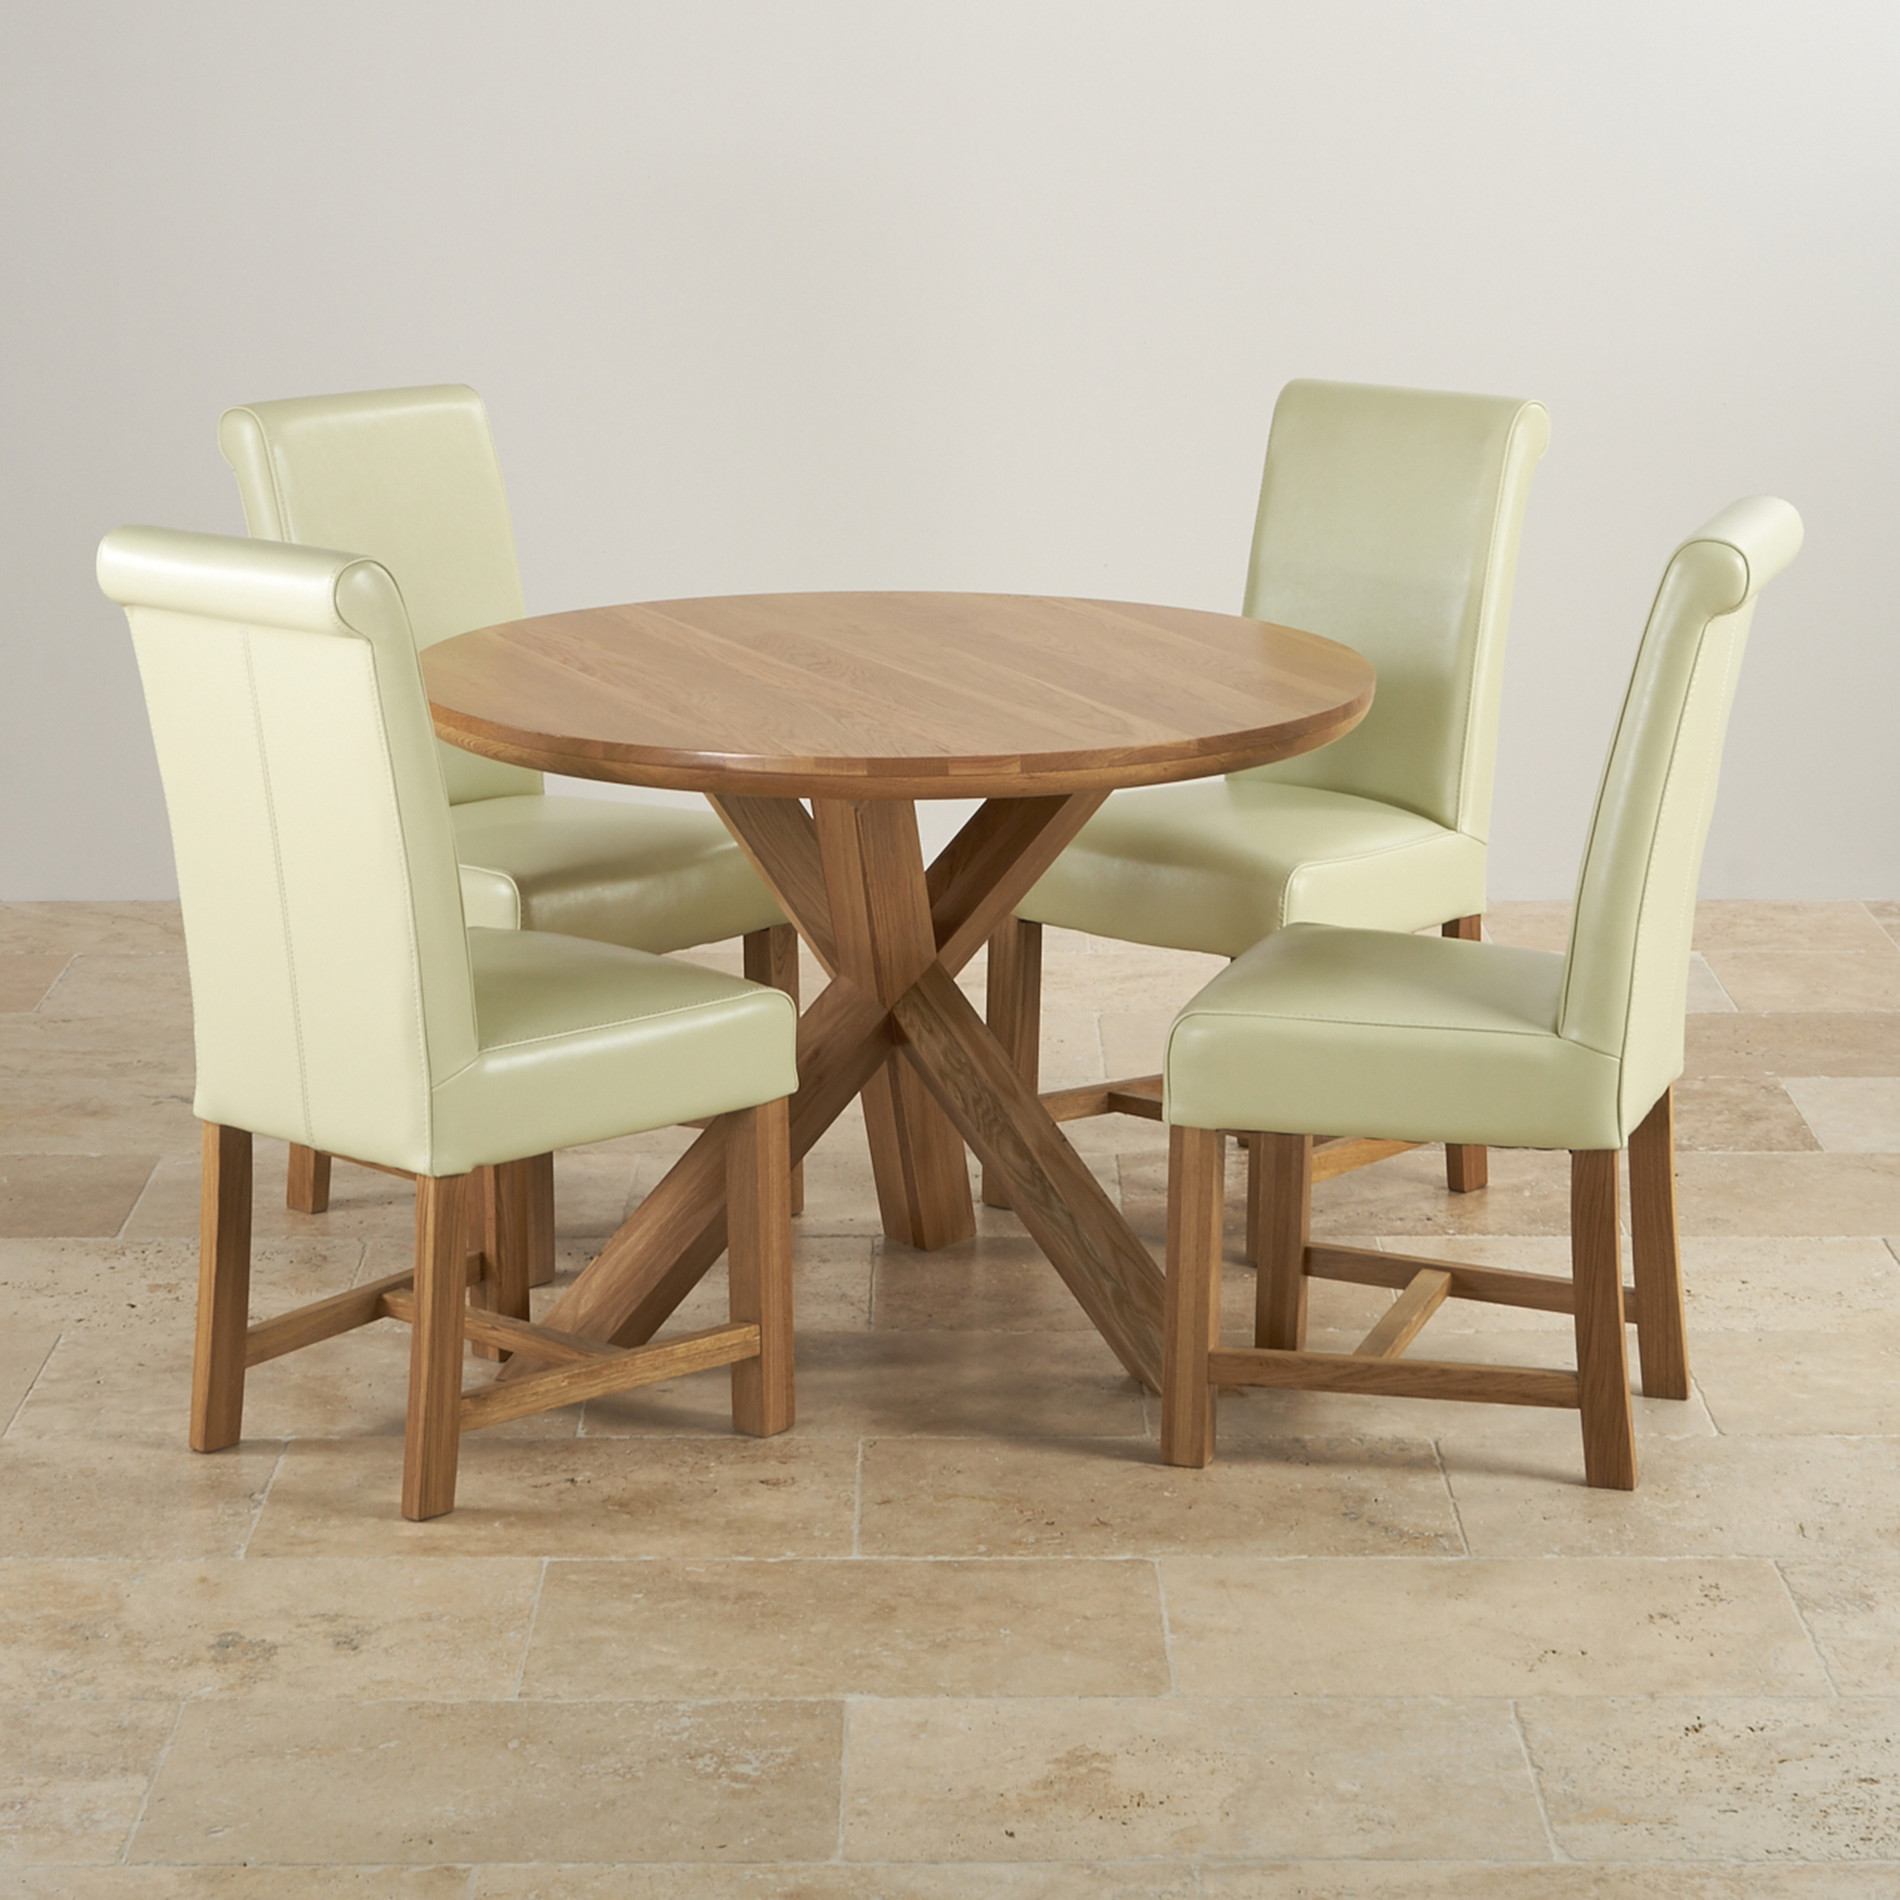 dining table chairs leather. dining table chairs leather